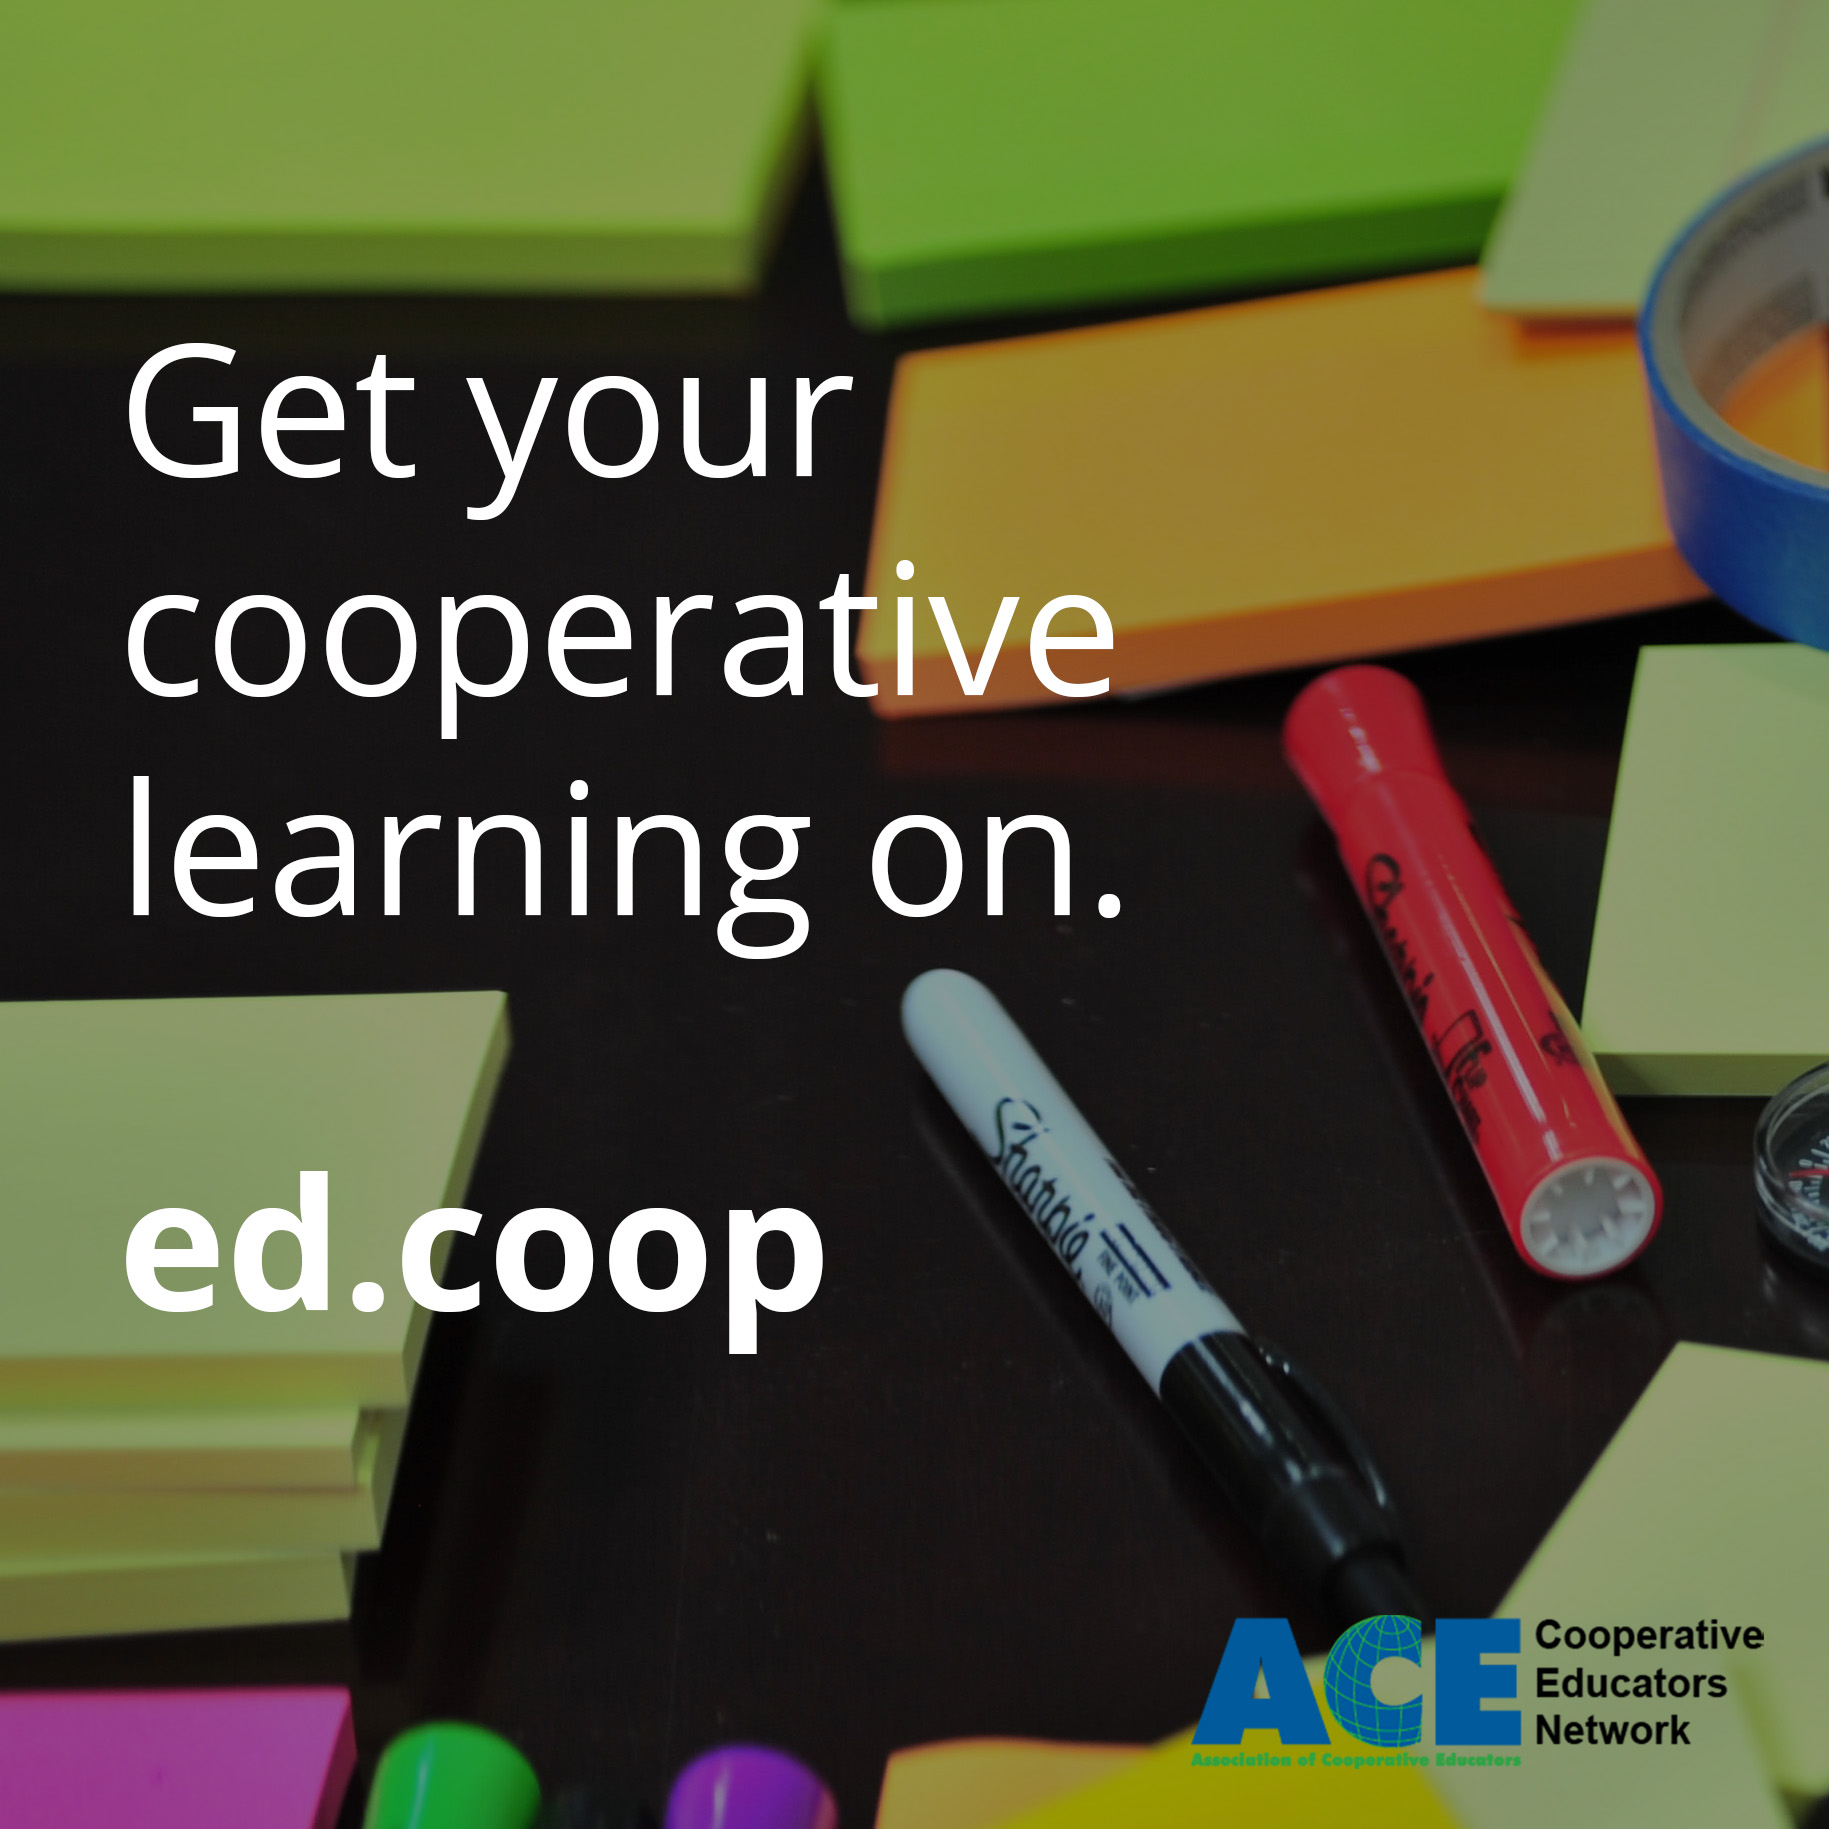 Curious about Co-ops? We're here to help